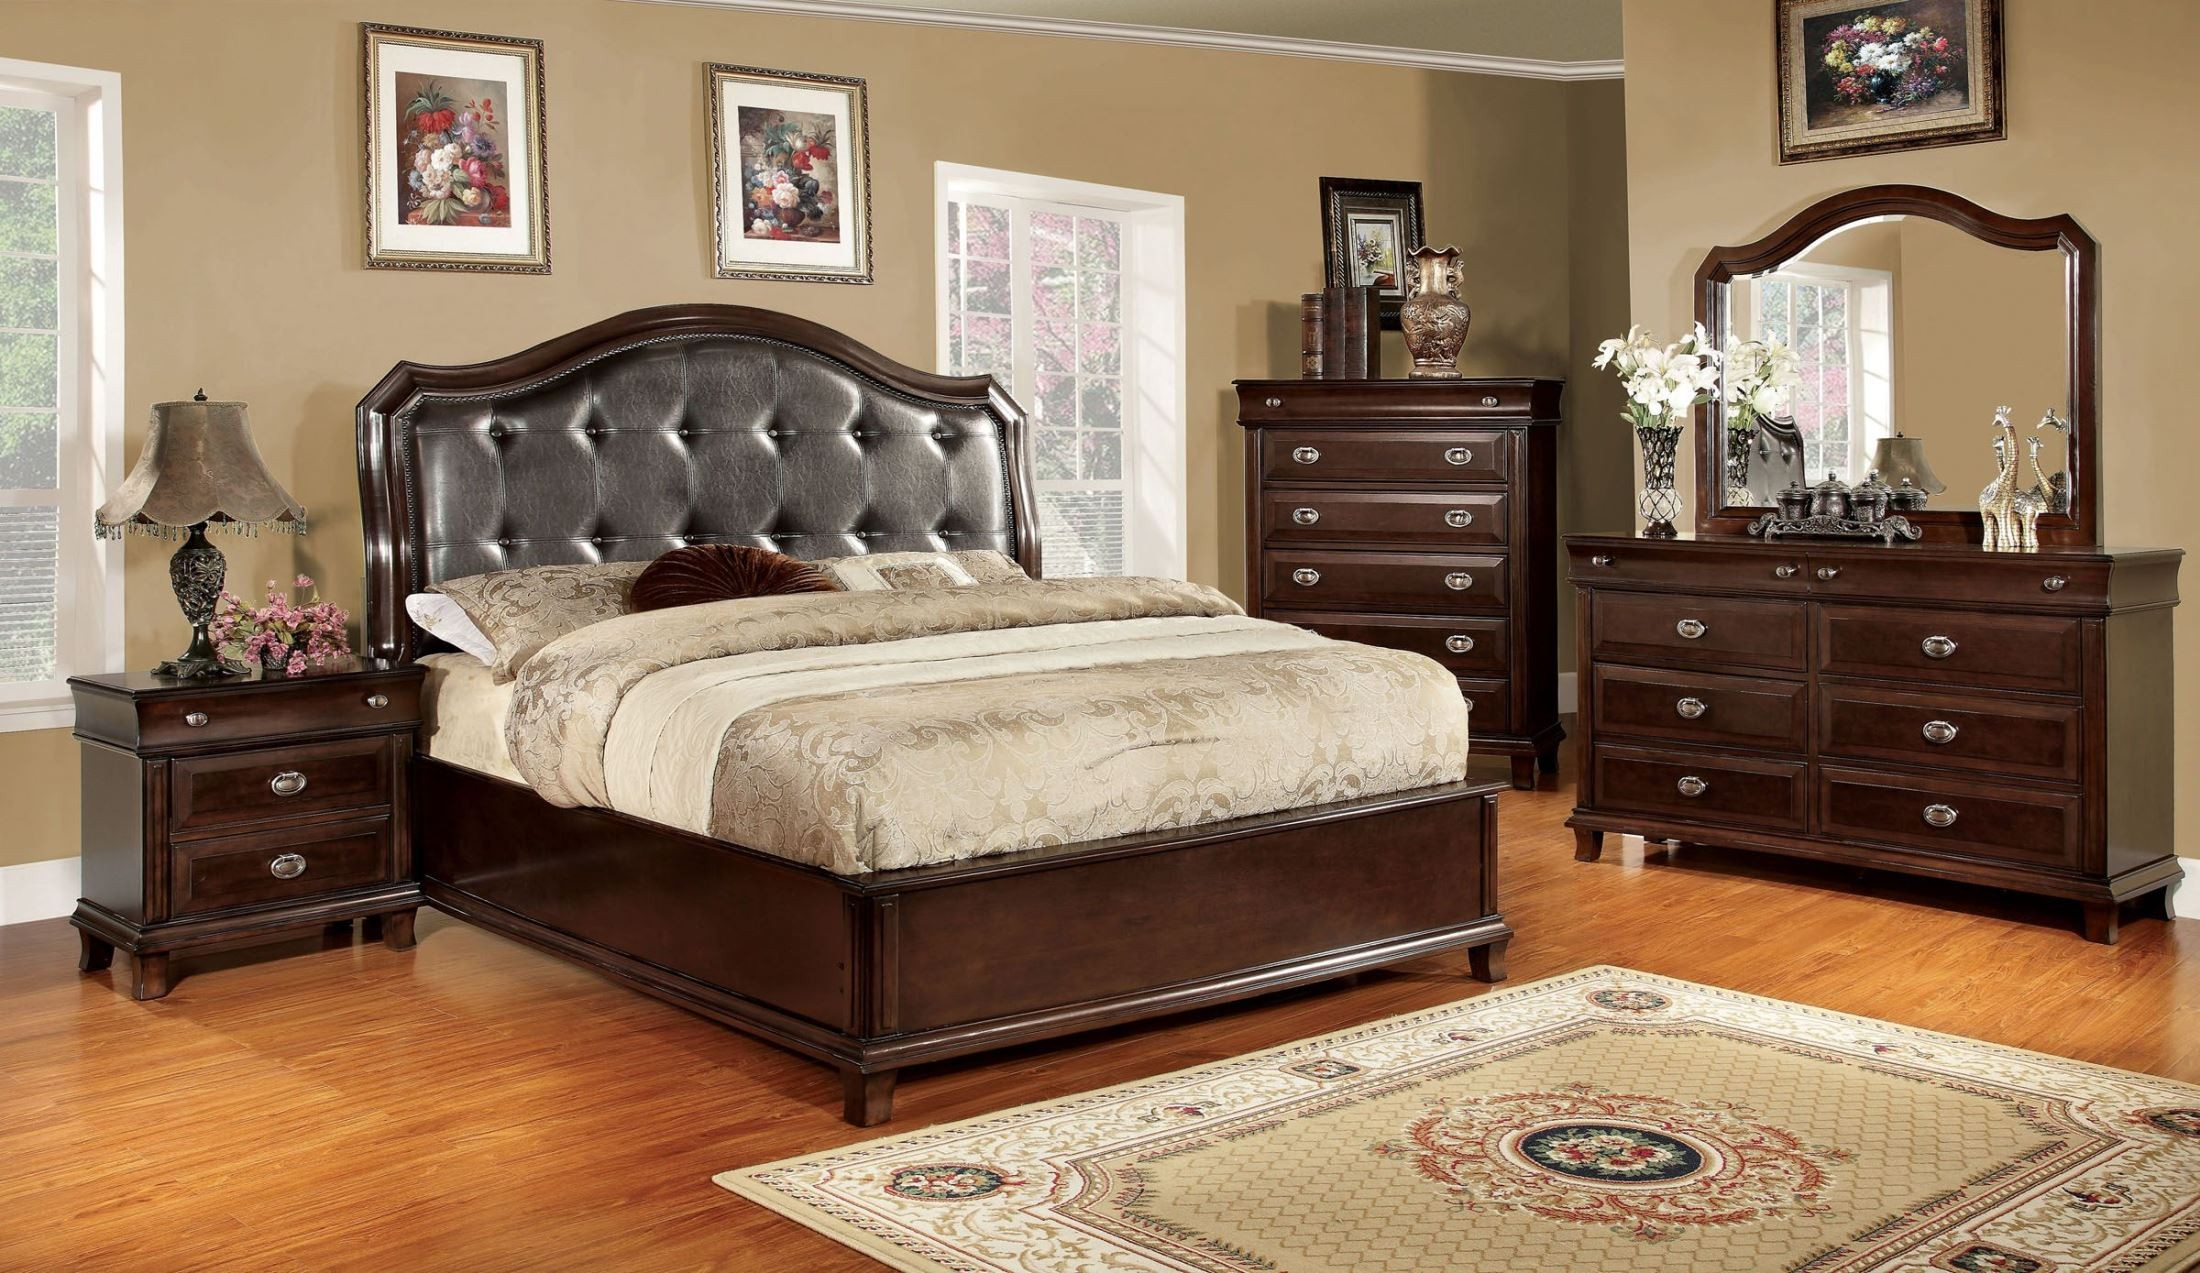 Arden brown cherry faux leather platform bedroom set for Where to get bedroom furniture